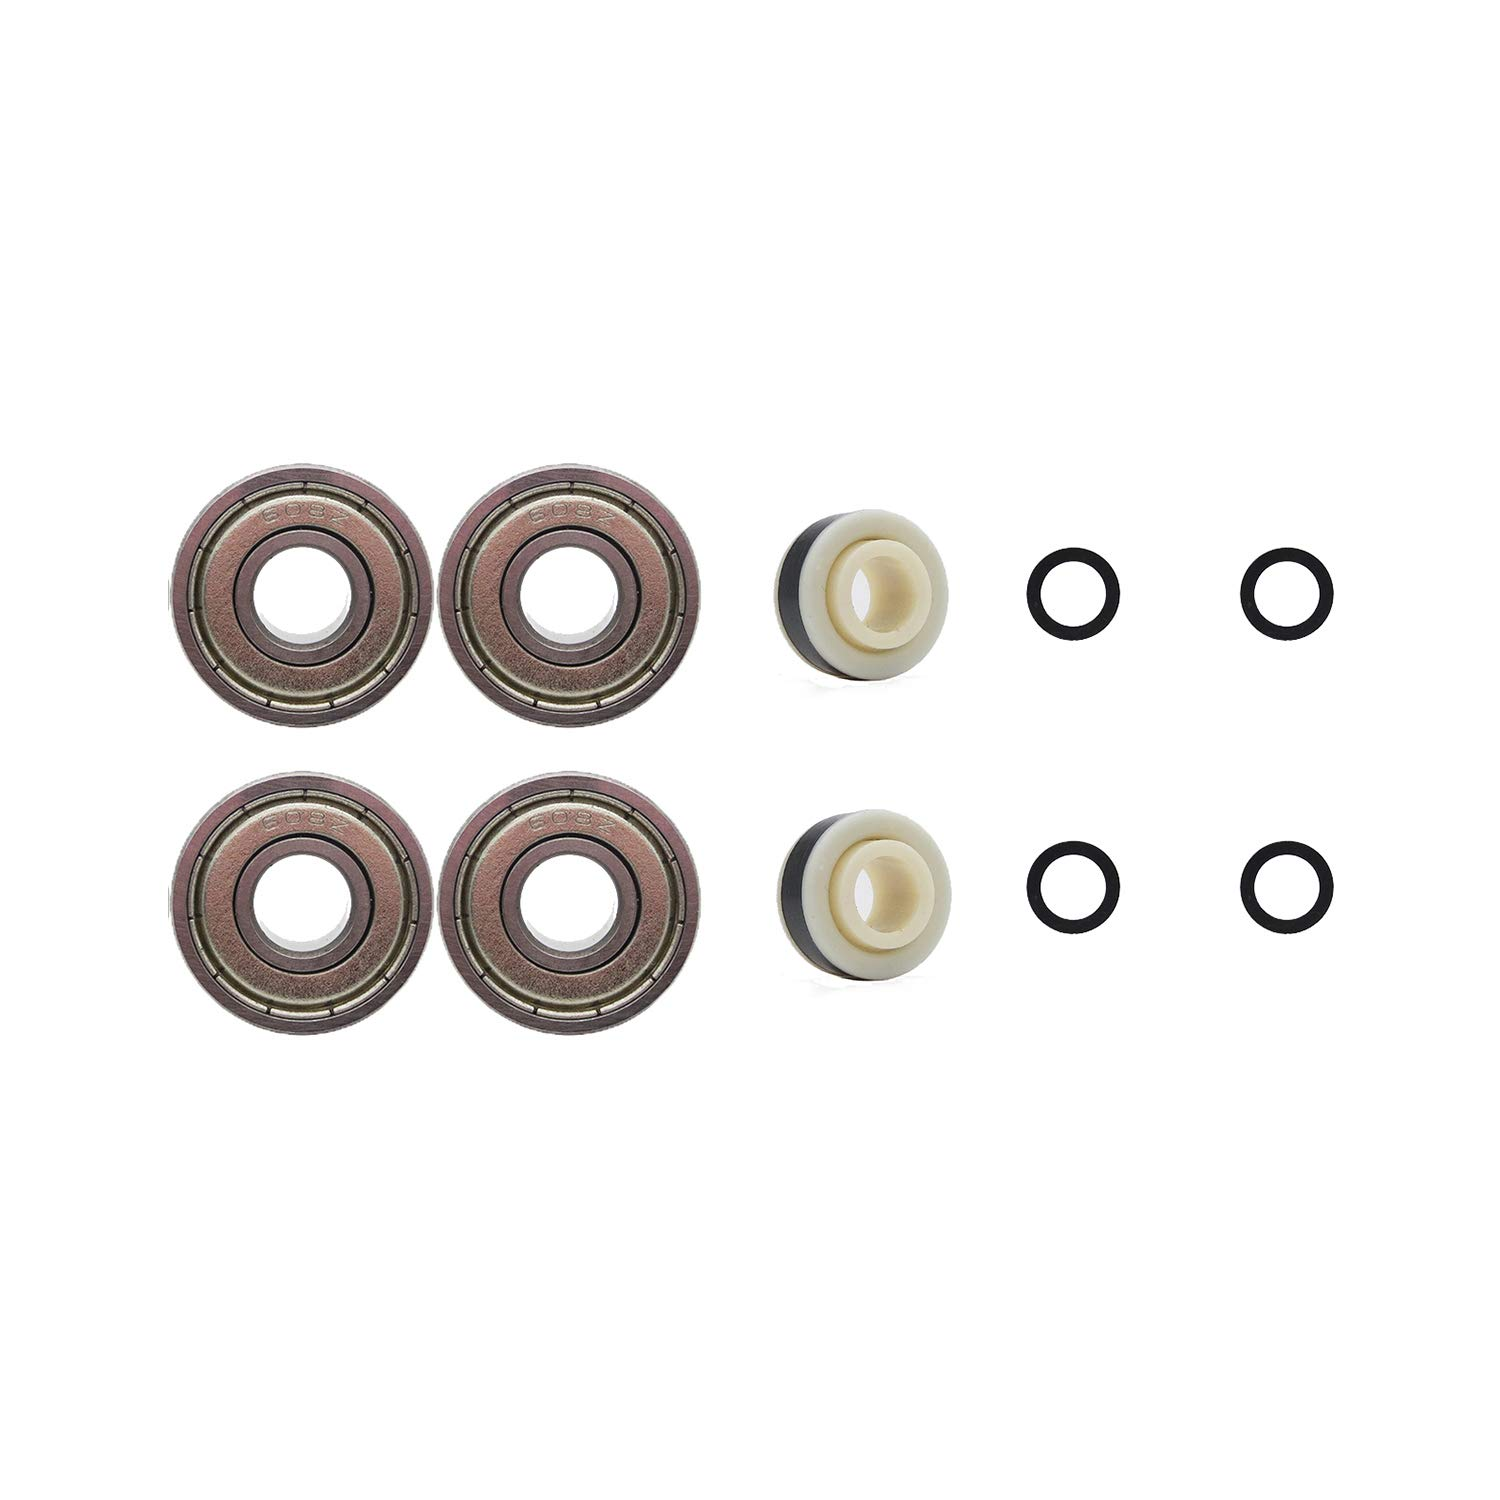 for Any Product Using Inline Skate Wheels Multiple Size and Color Options Available Rollerex 2-Pack 92A LED Light-Up Wheels w//Bearings